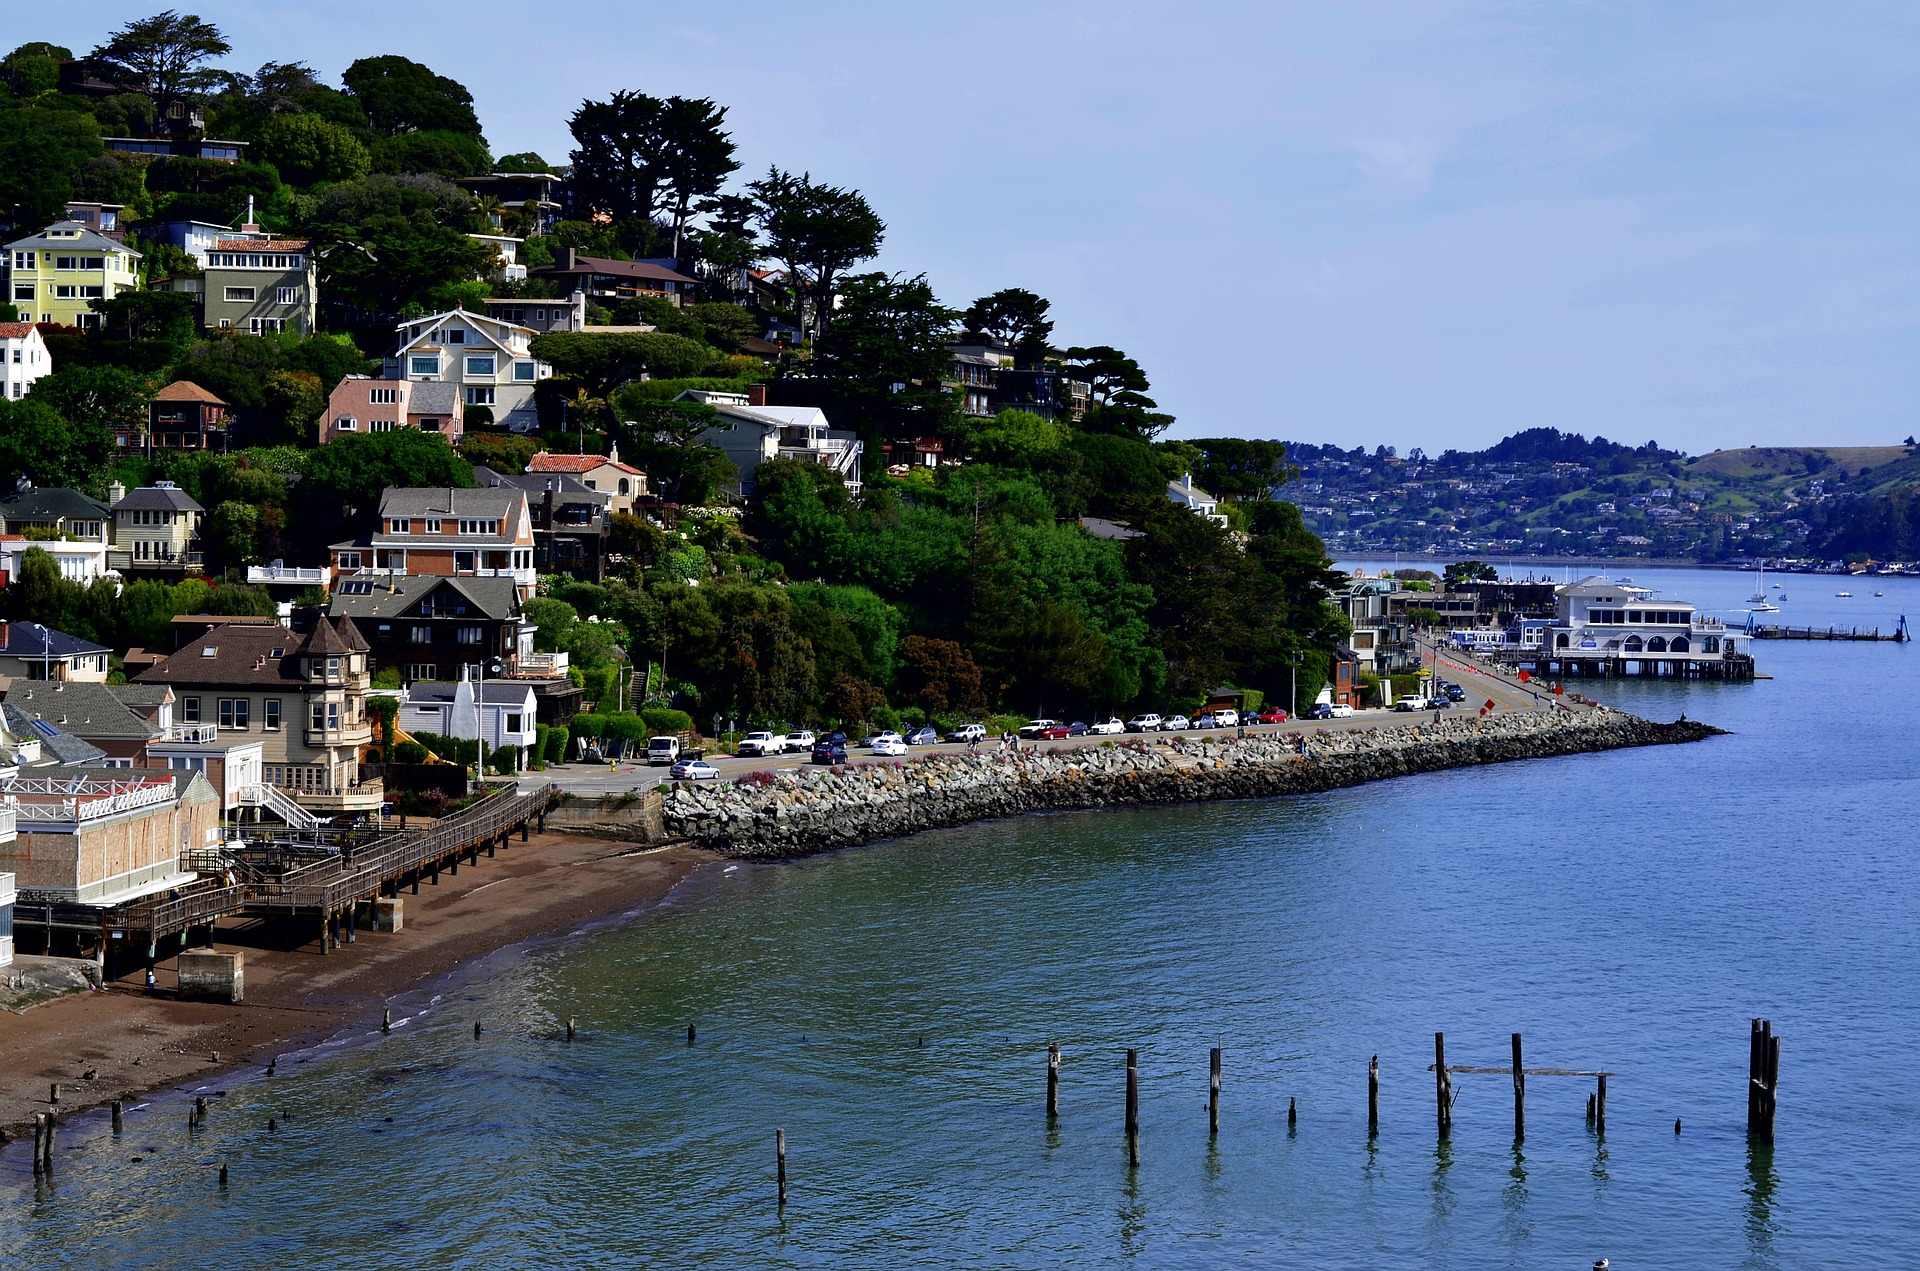 a picture of houses along the hills of Sausalito ca in marin county near the water